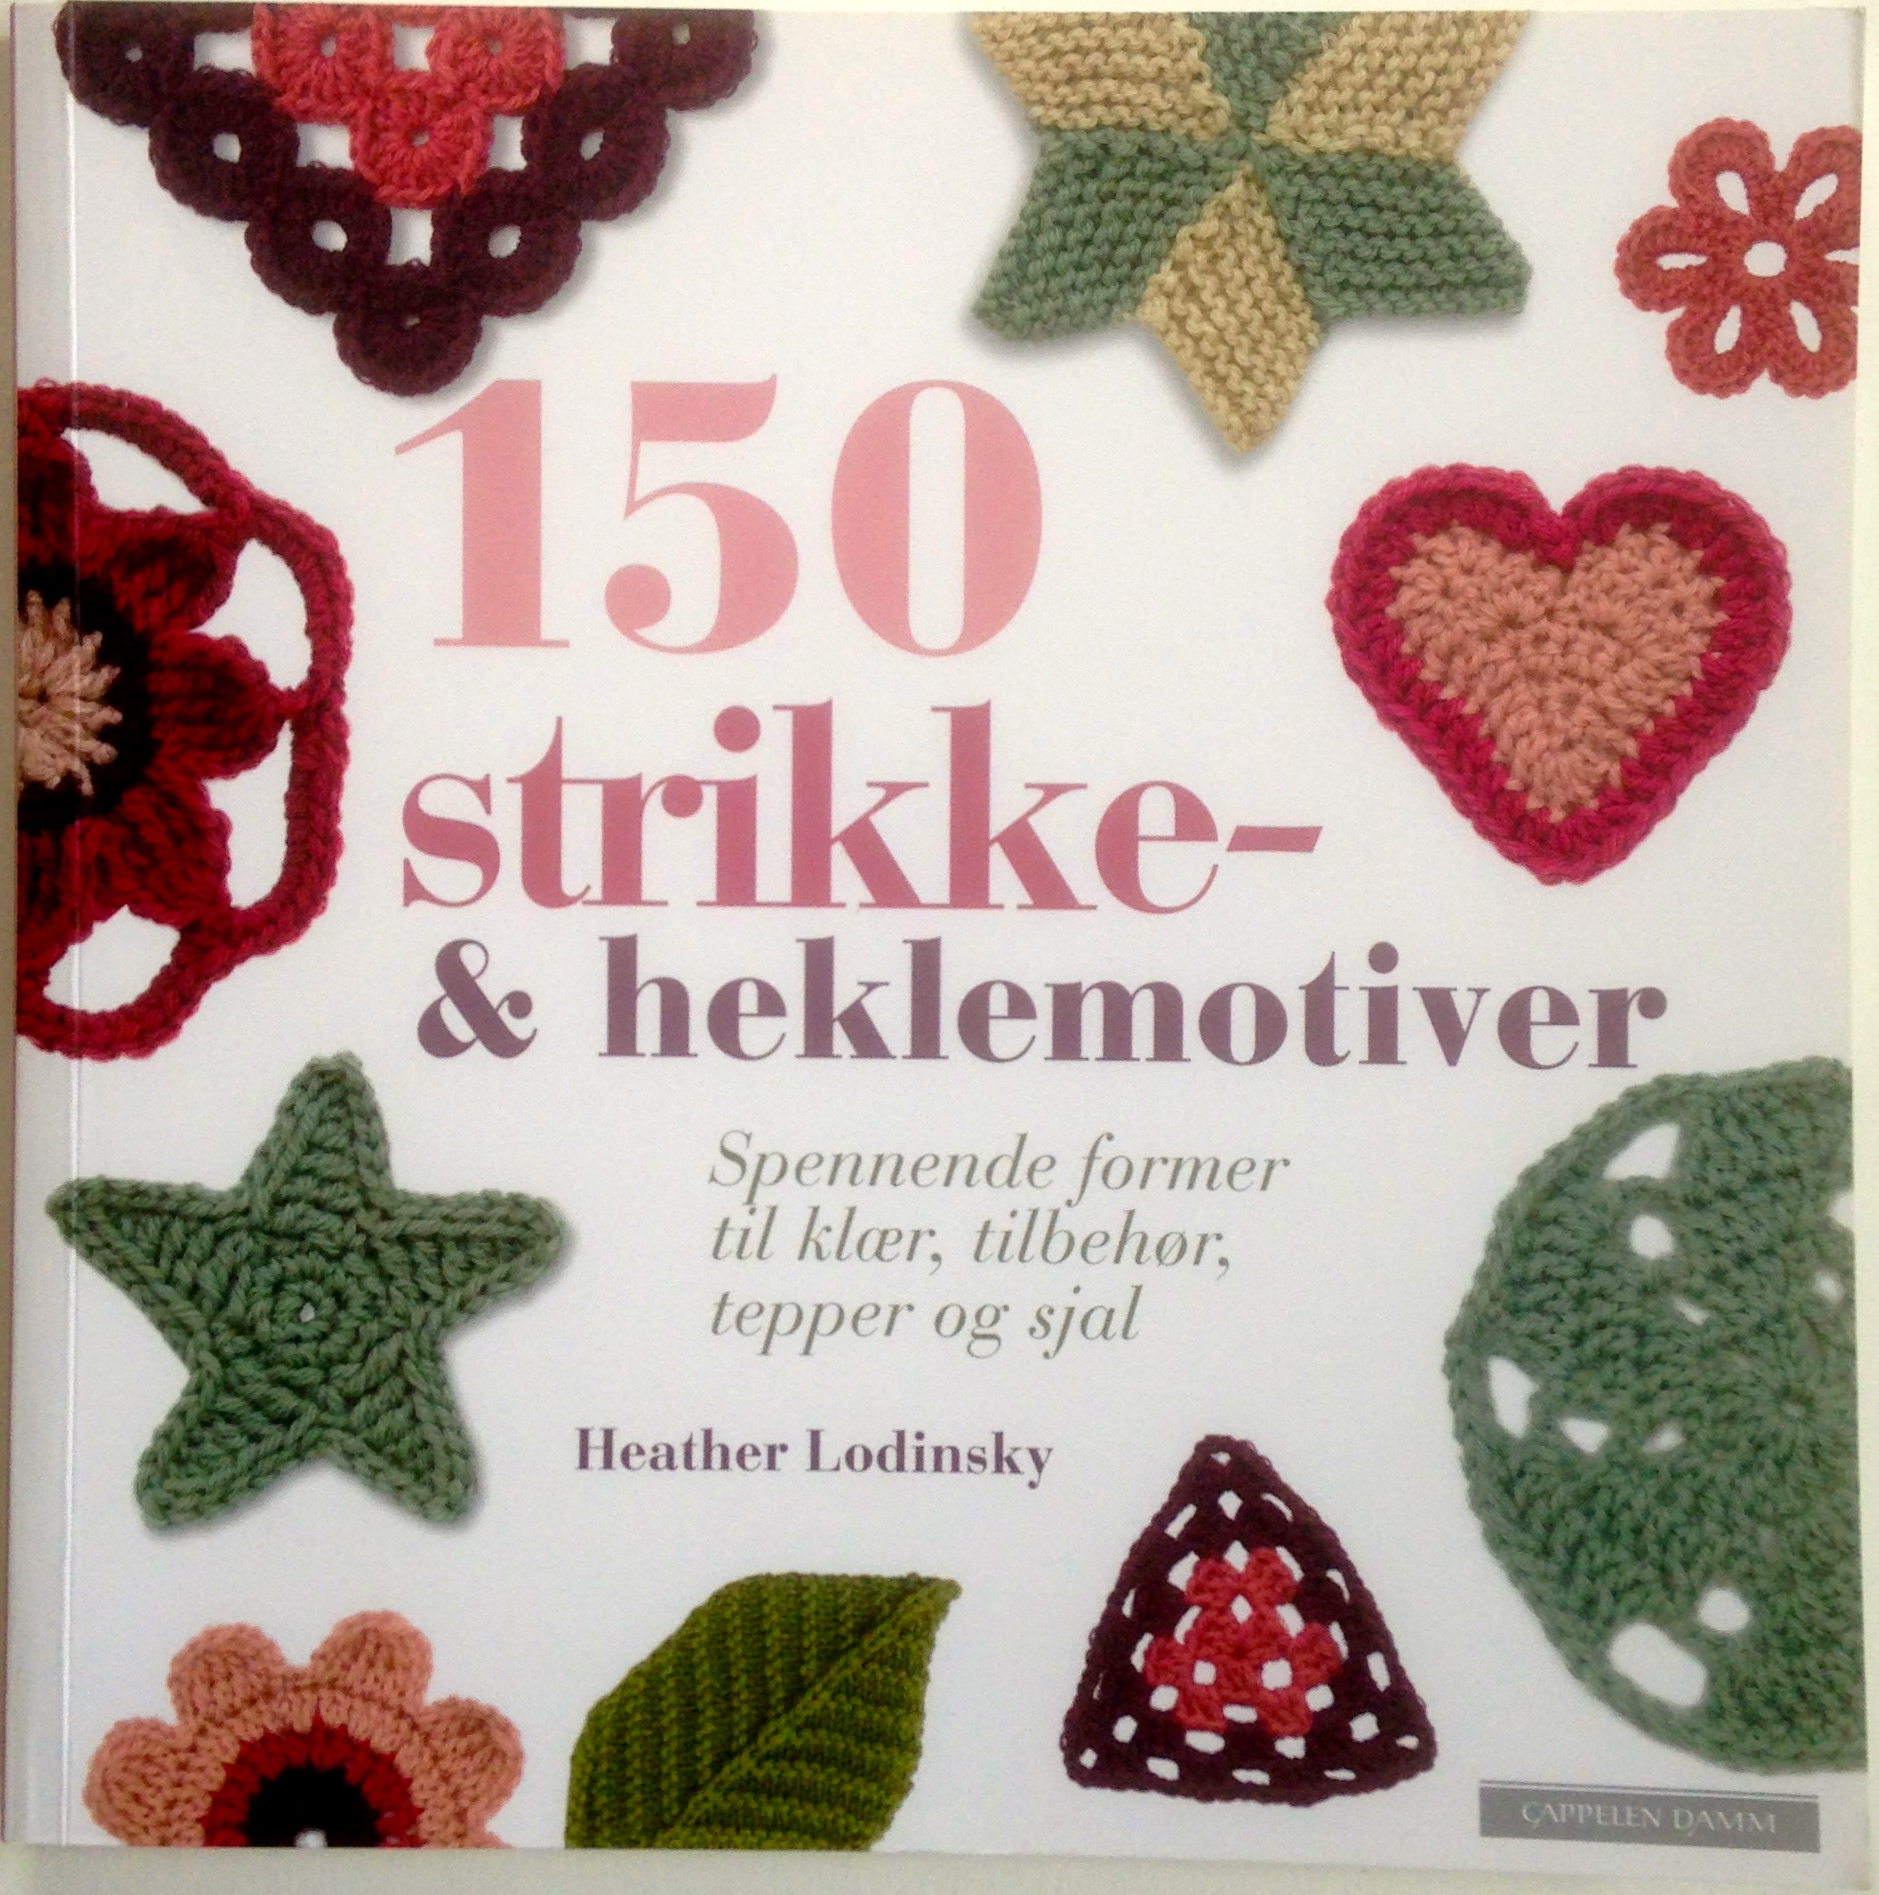 150 strikke- & heklemotiver